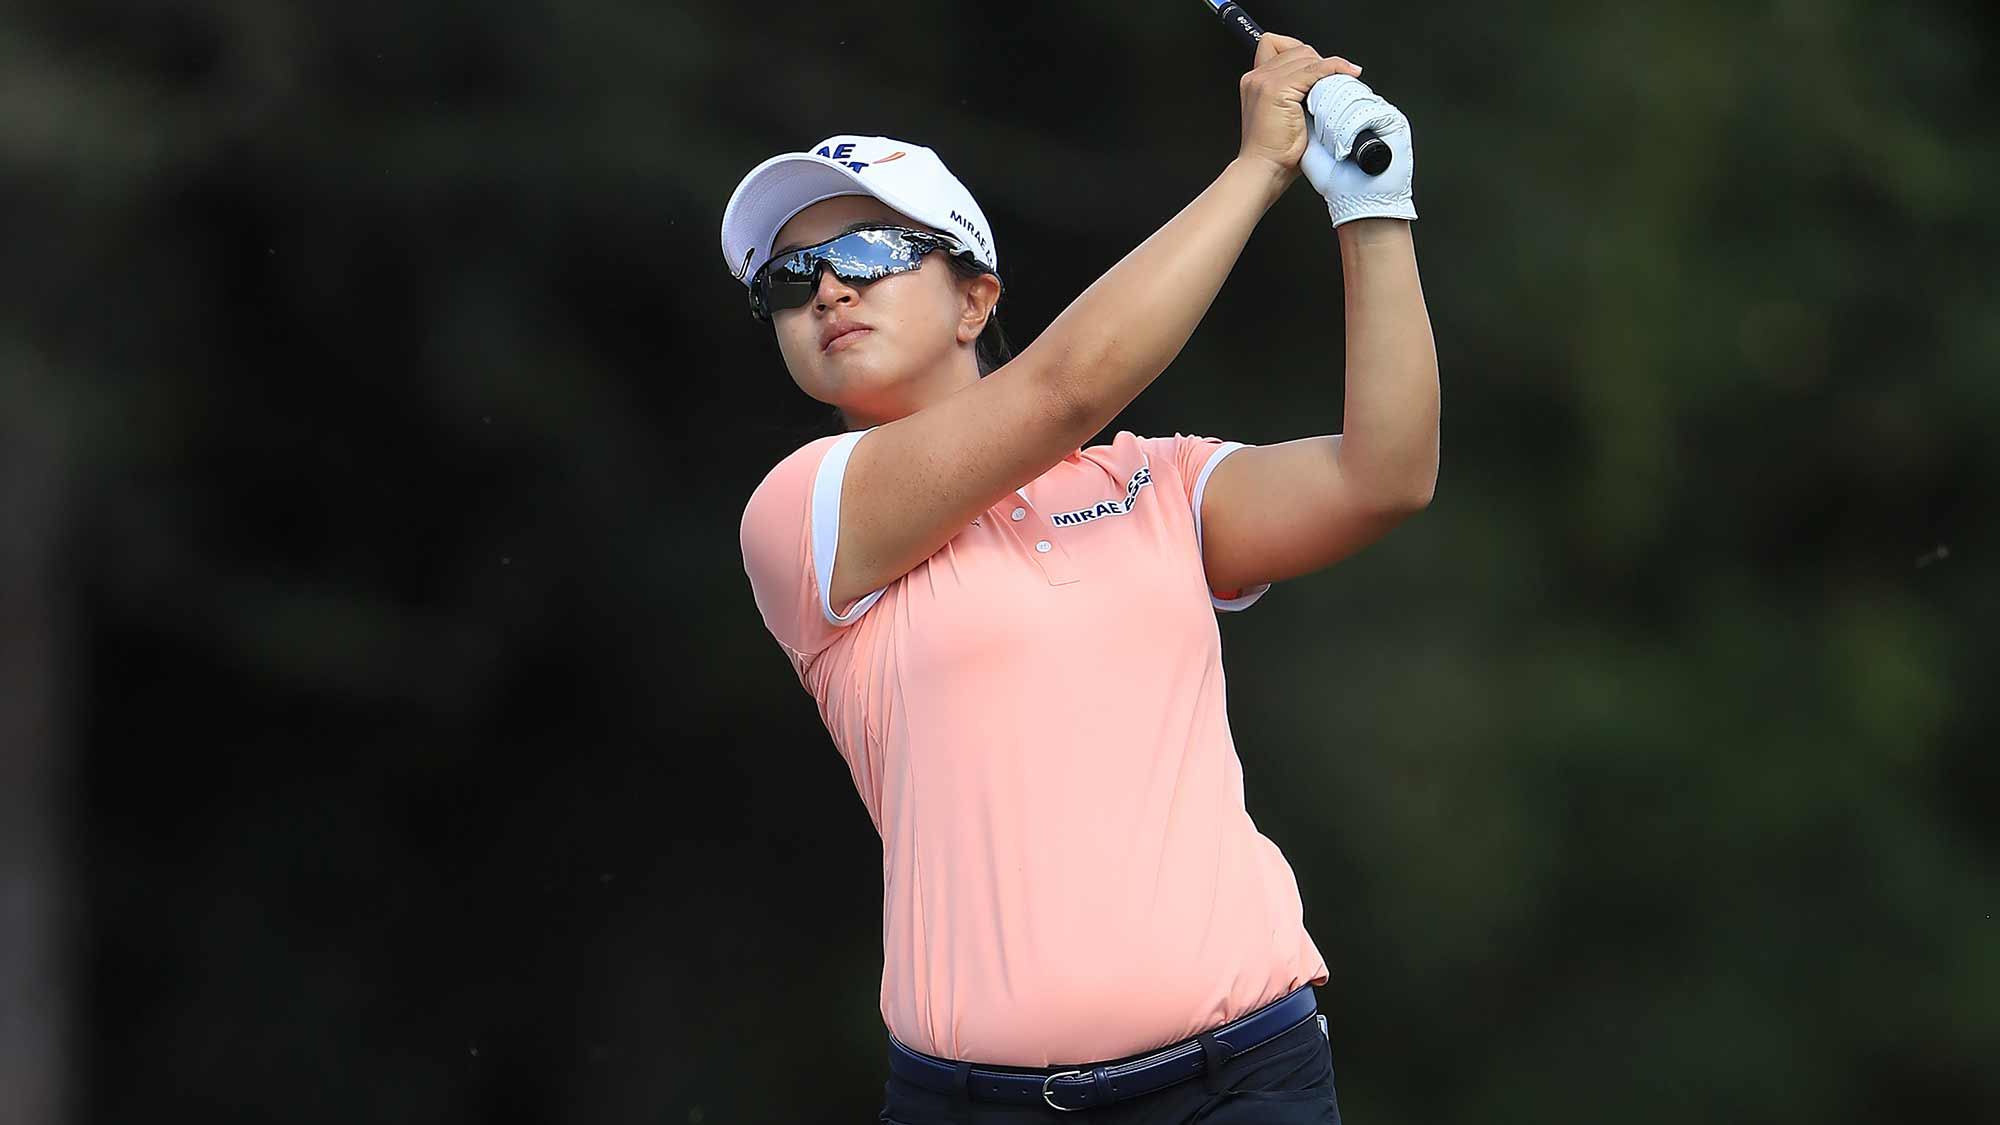 Sei Young Kim of South Korea plays a shot on the sixth hole during the second round of the CME Group Tour Championship at Tiburon Golf Club on November 22, 2019 in Naples, Florida